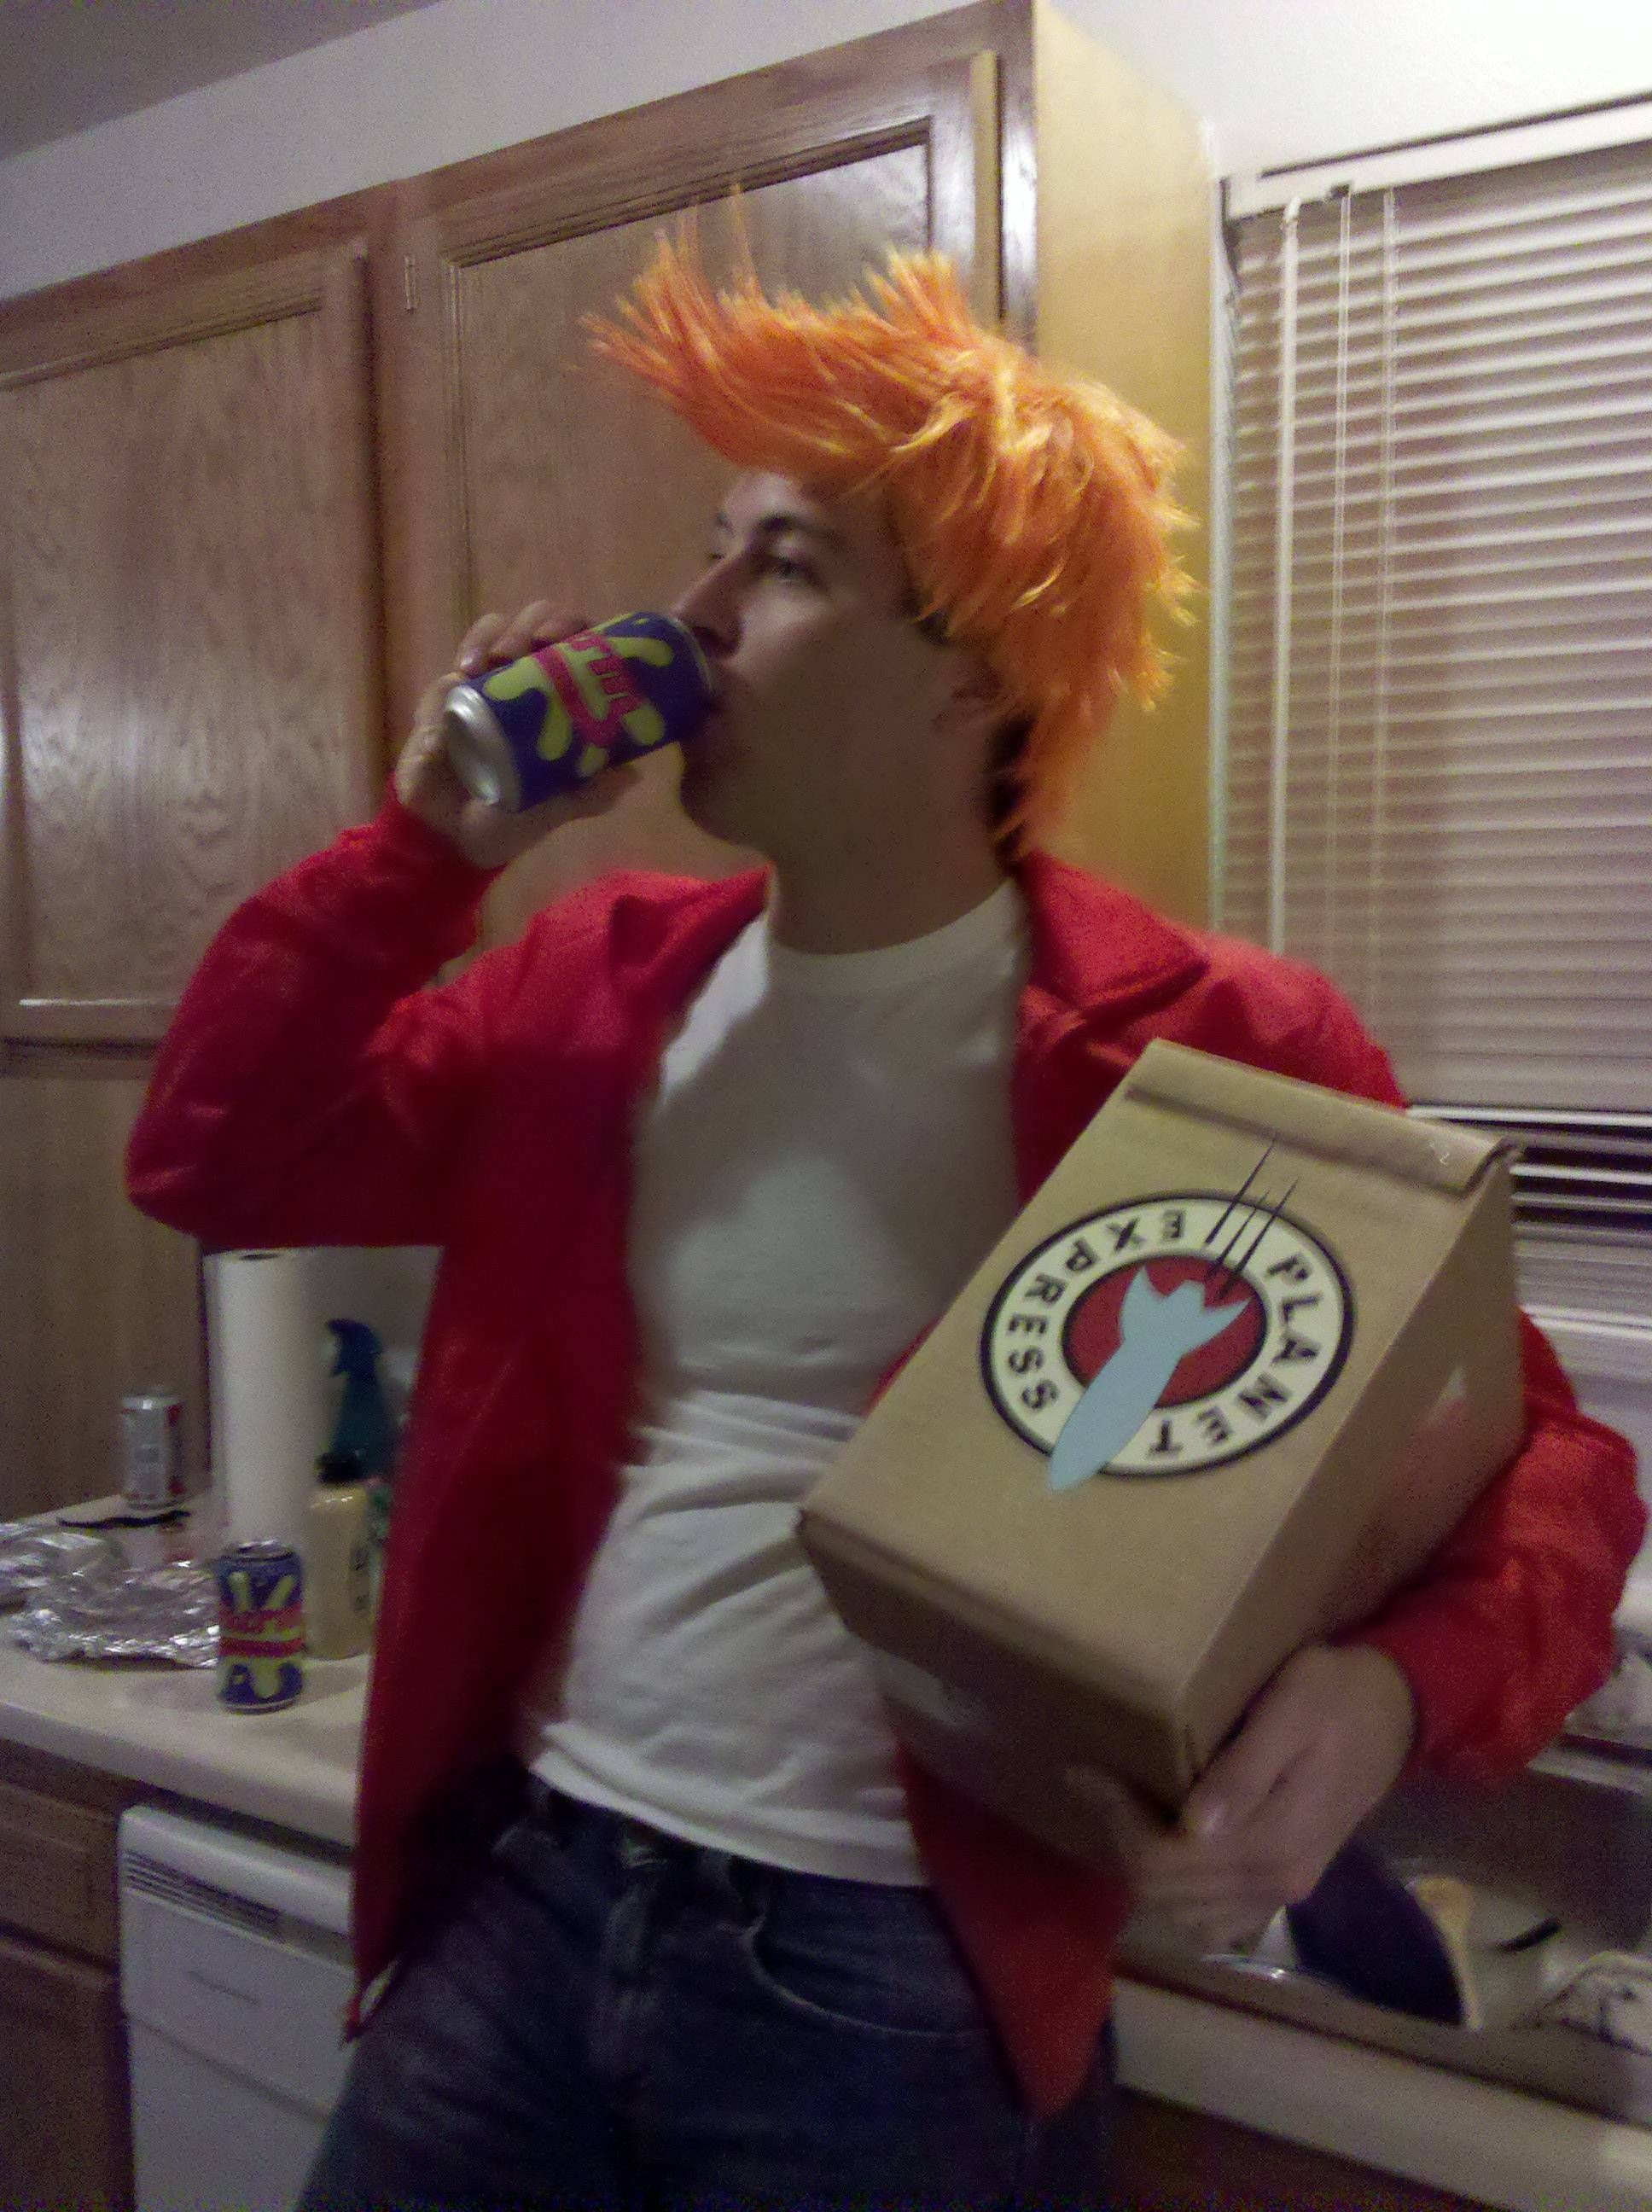 Find this Pin and more on Halloween costumes by isabellebecerri. & Epic Fry costume! | Halloween costumes | Pinterest | Halloween ...